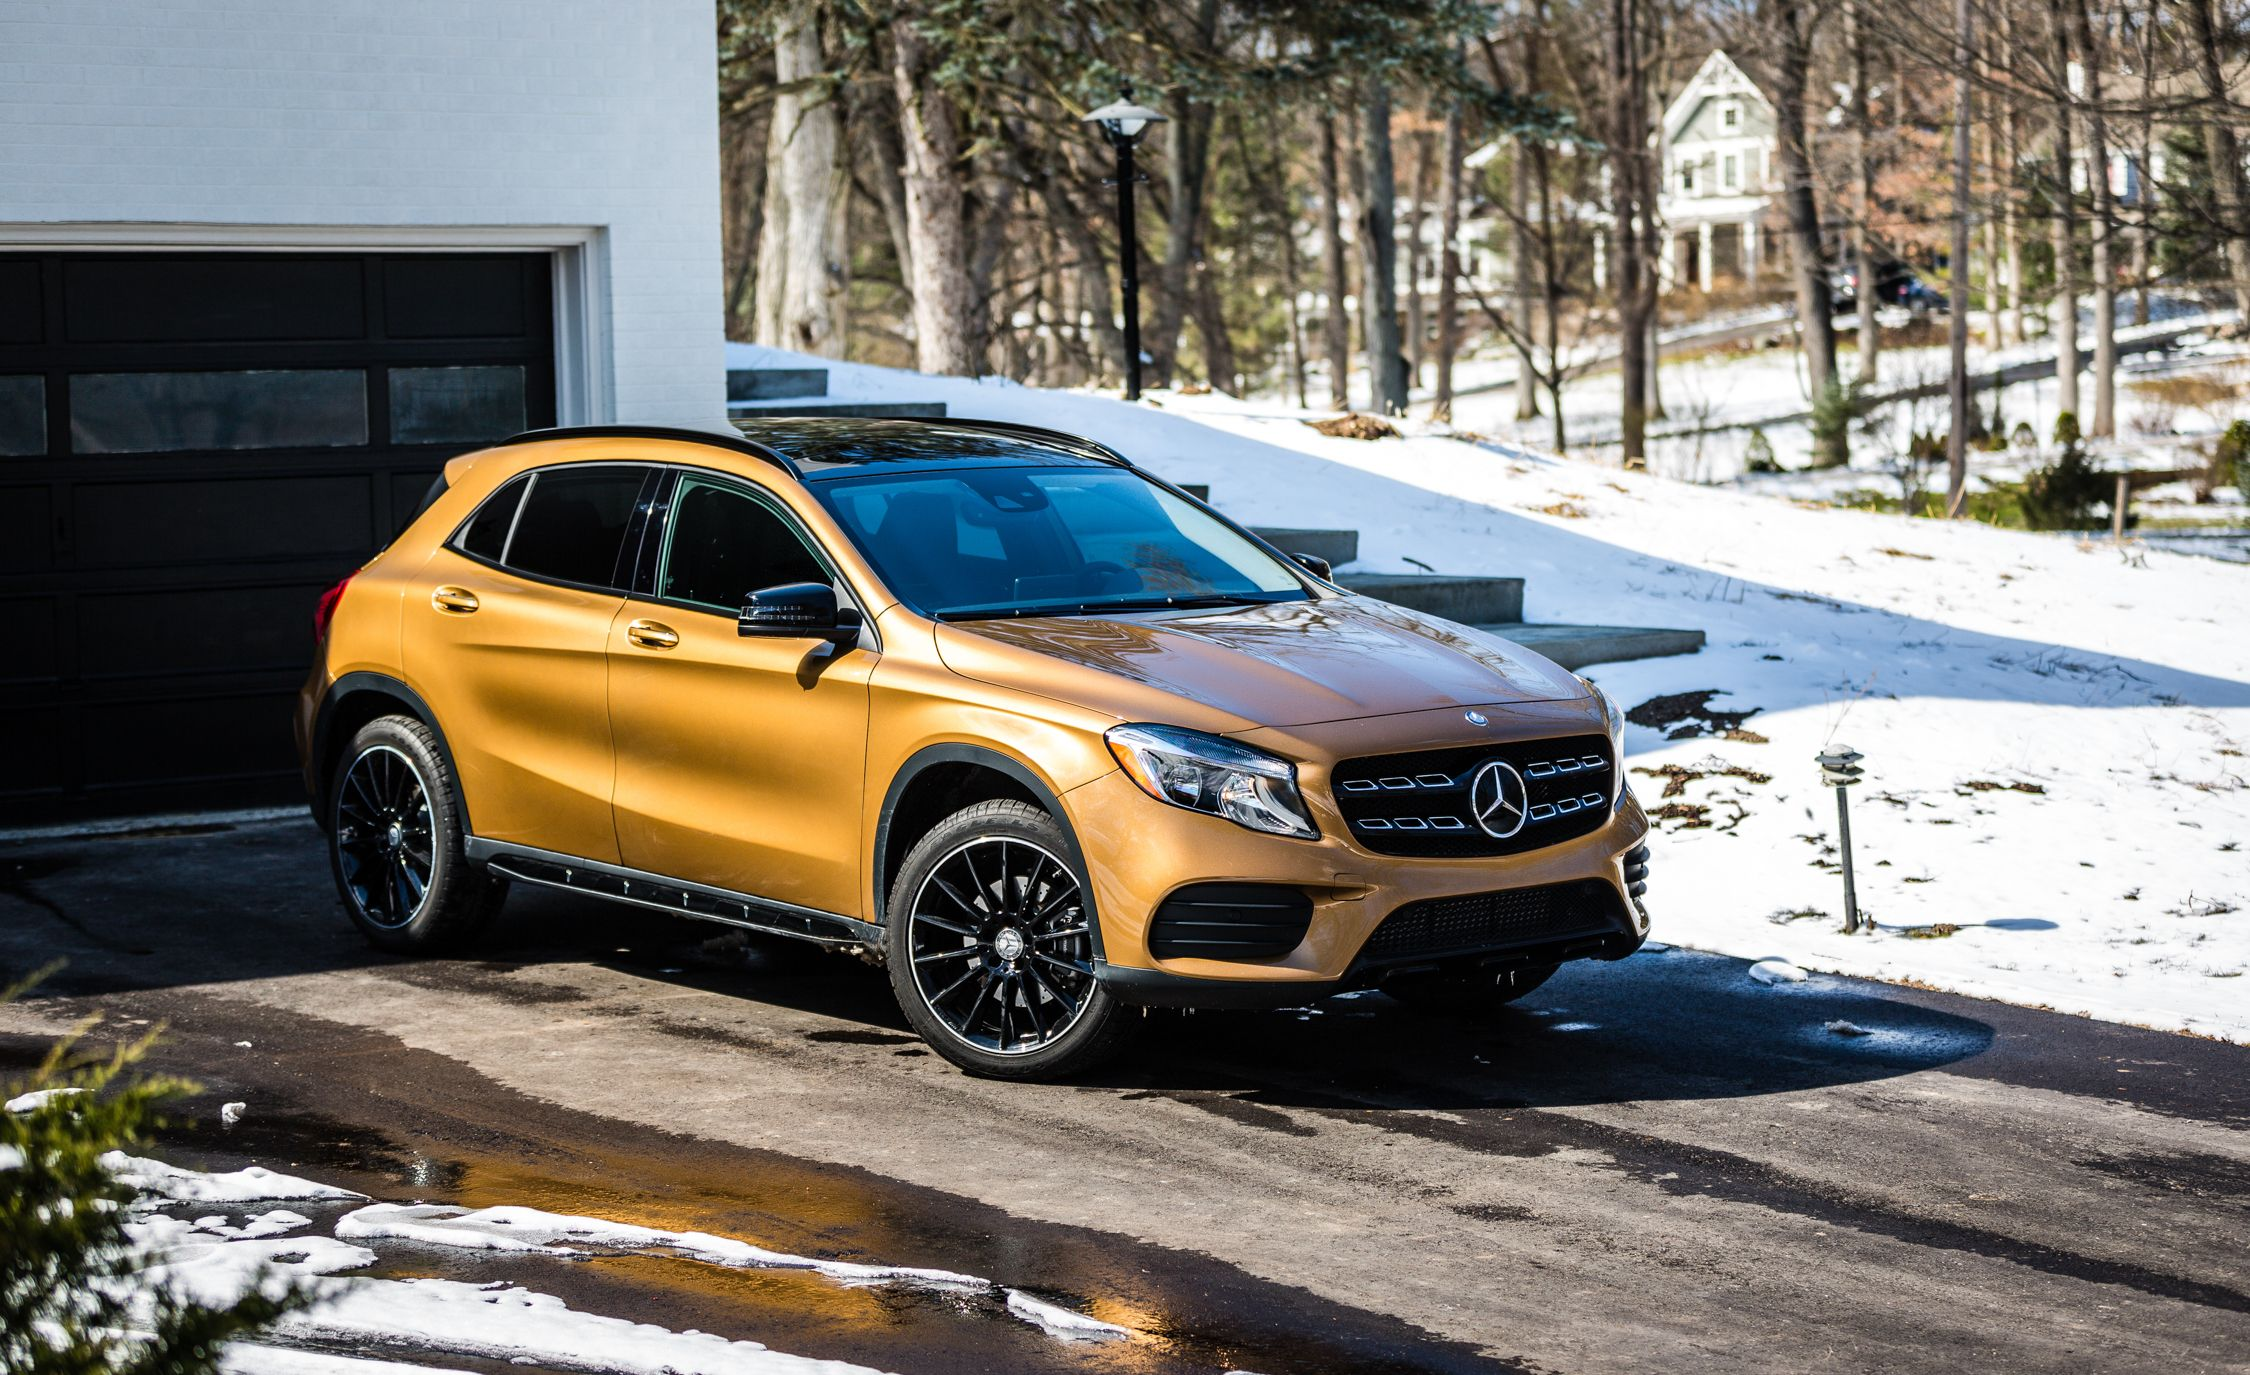 Mercedes Benz Gla Cl Reviews Price Photos And Specs Car Driver